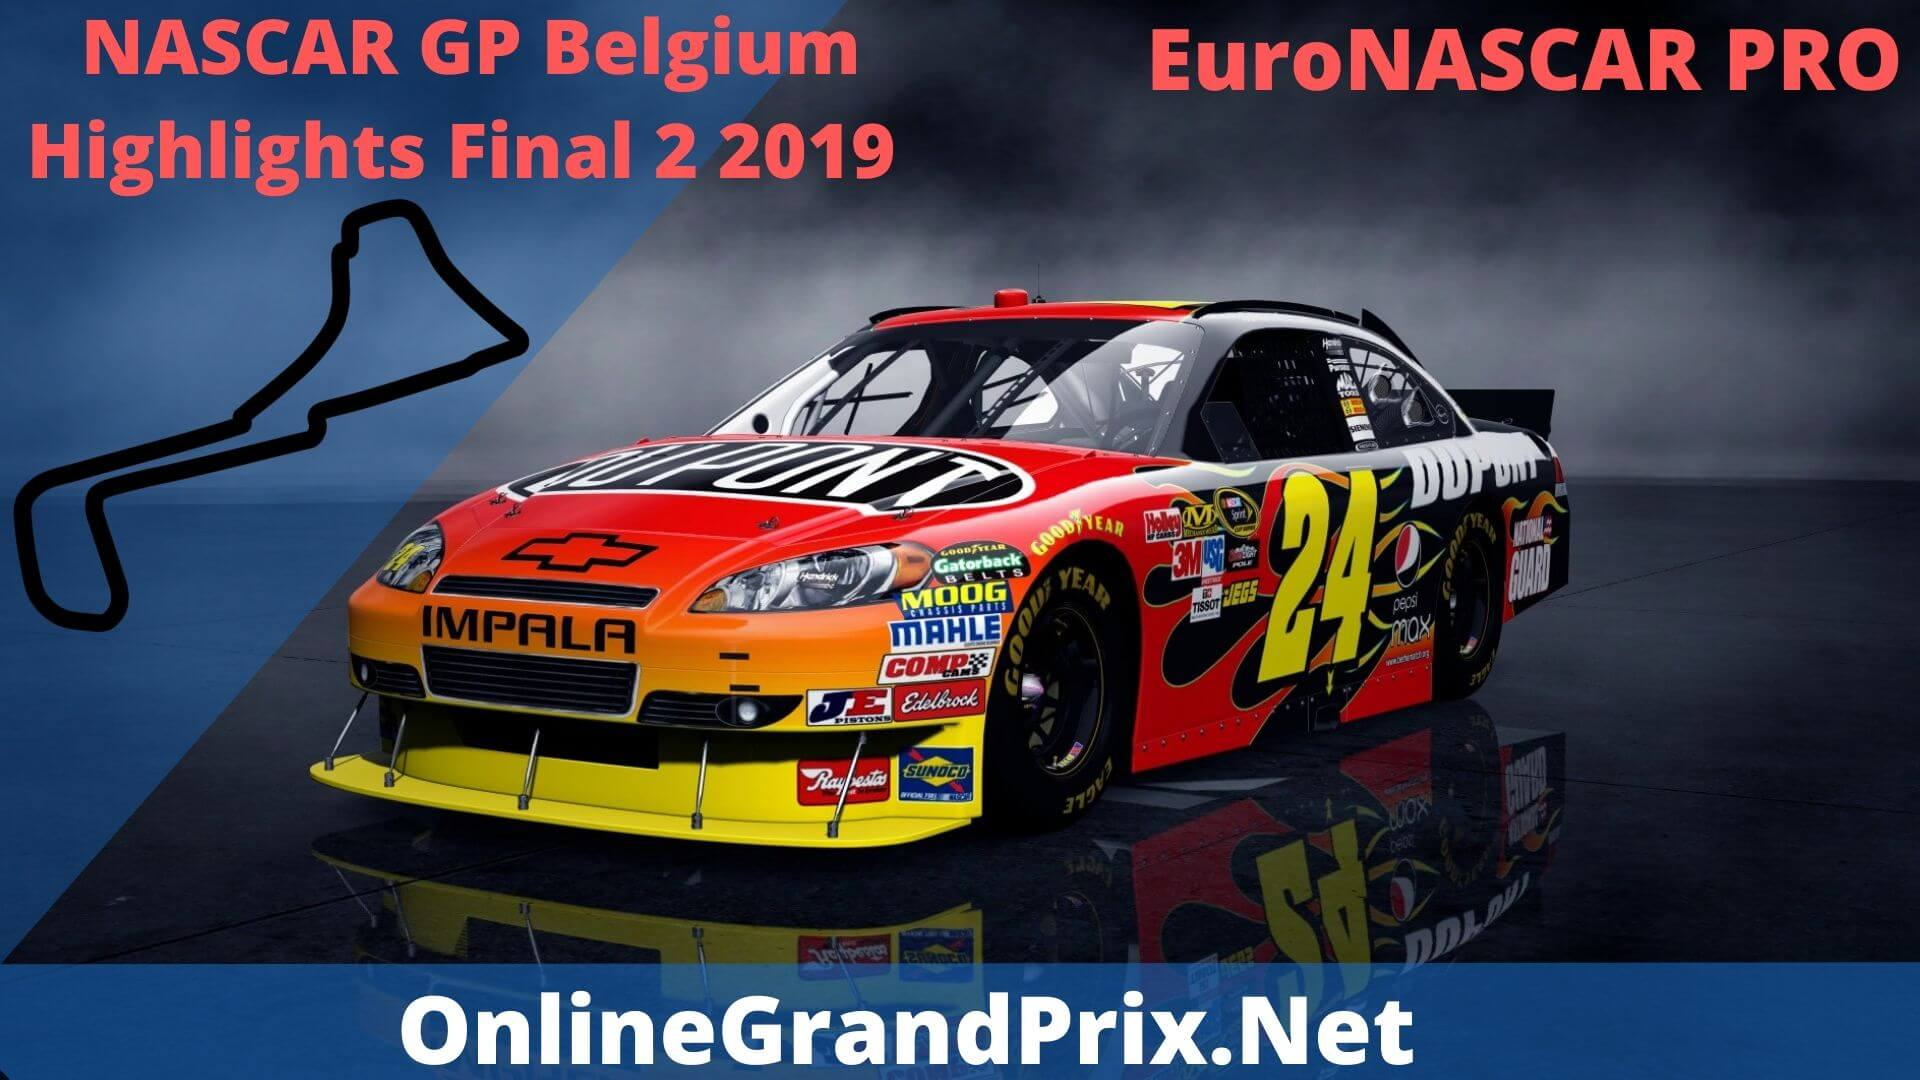 NASCAR GP Belgium Final 2 Highlights 2019